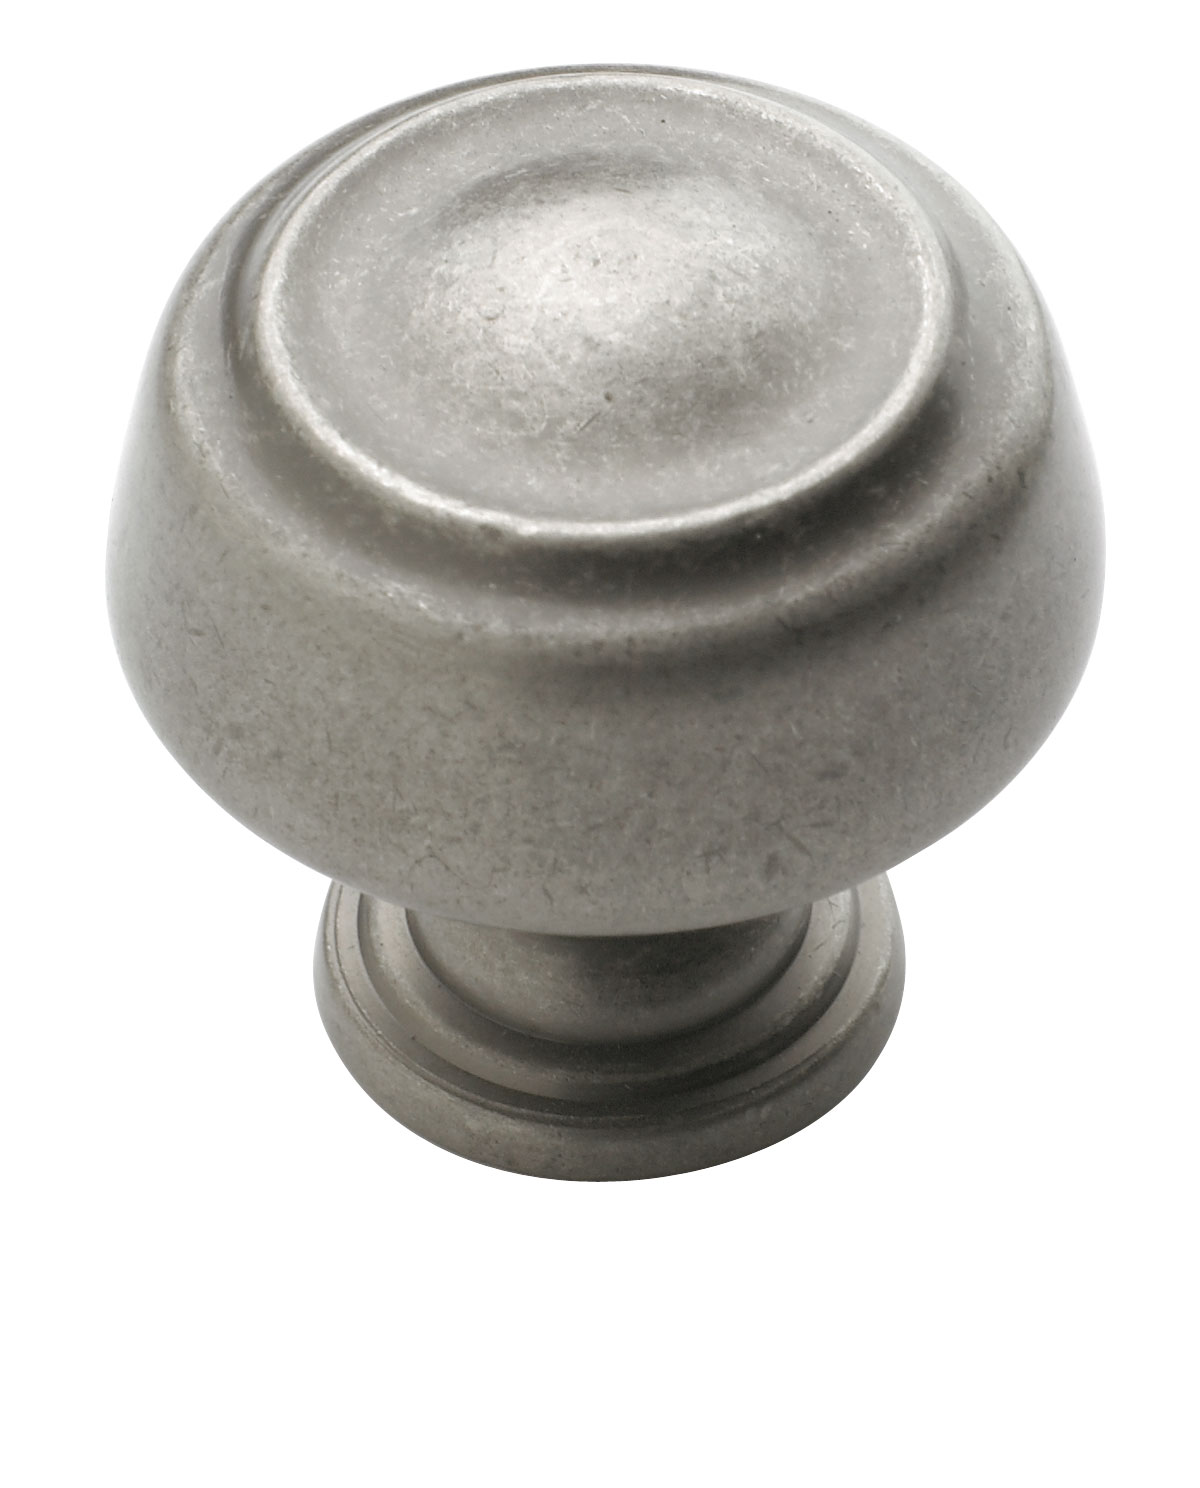 Amerock 1 3/16 Inch Weathered Nickel Kane Cabinet Knob